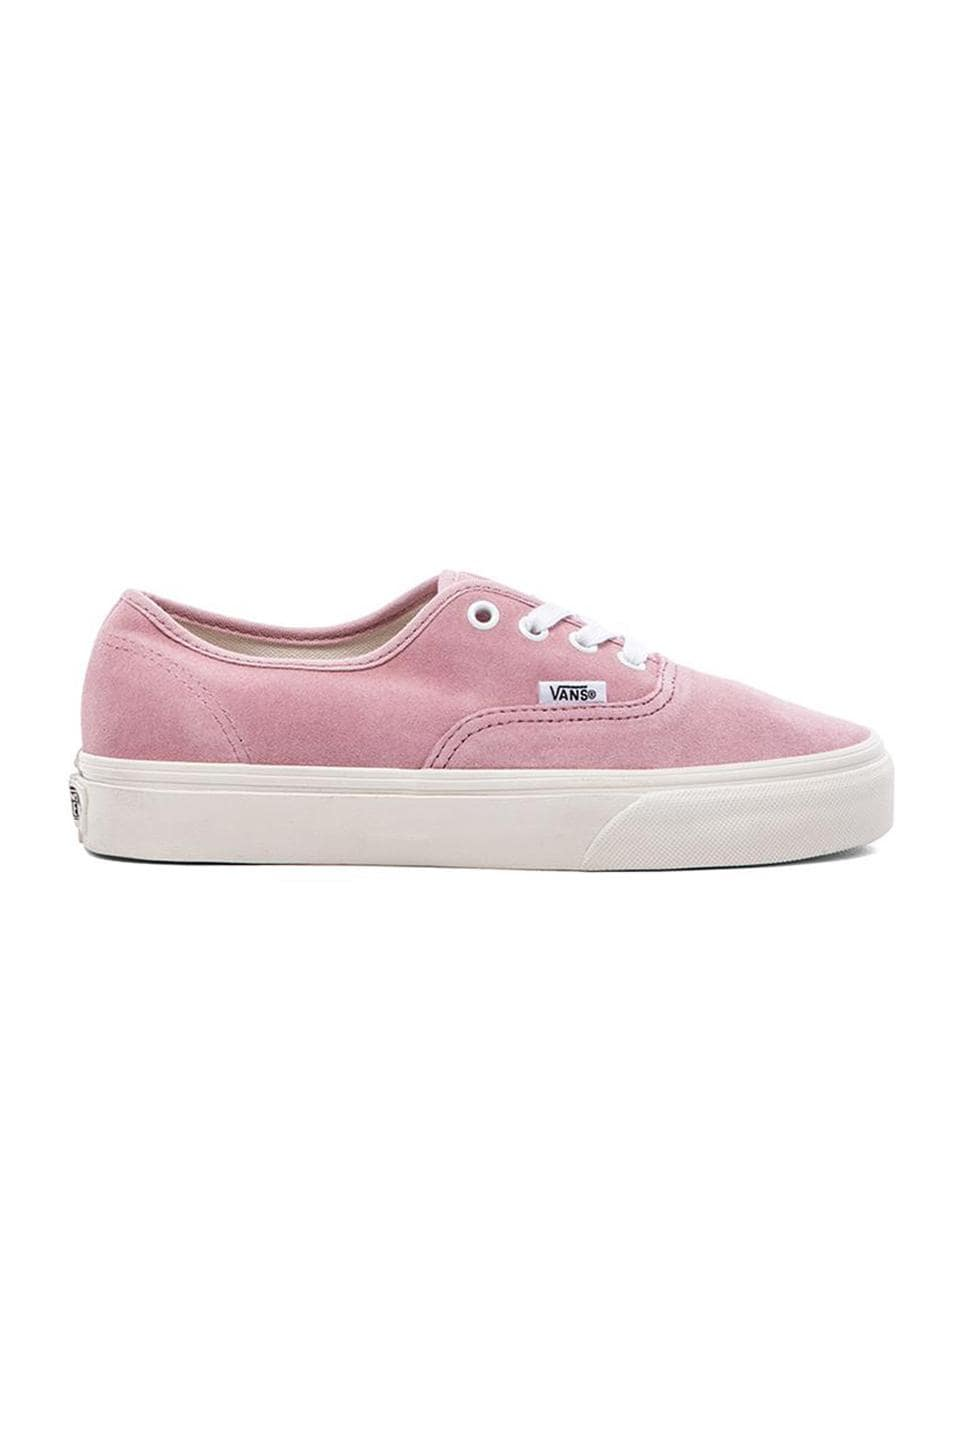 Vans Authentic Sneaker in Prism Pink